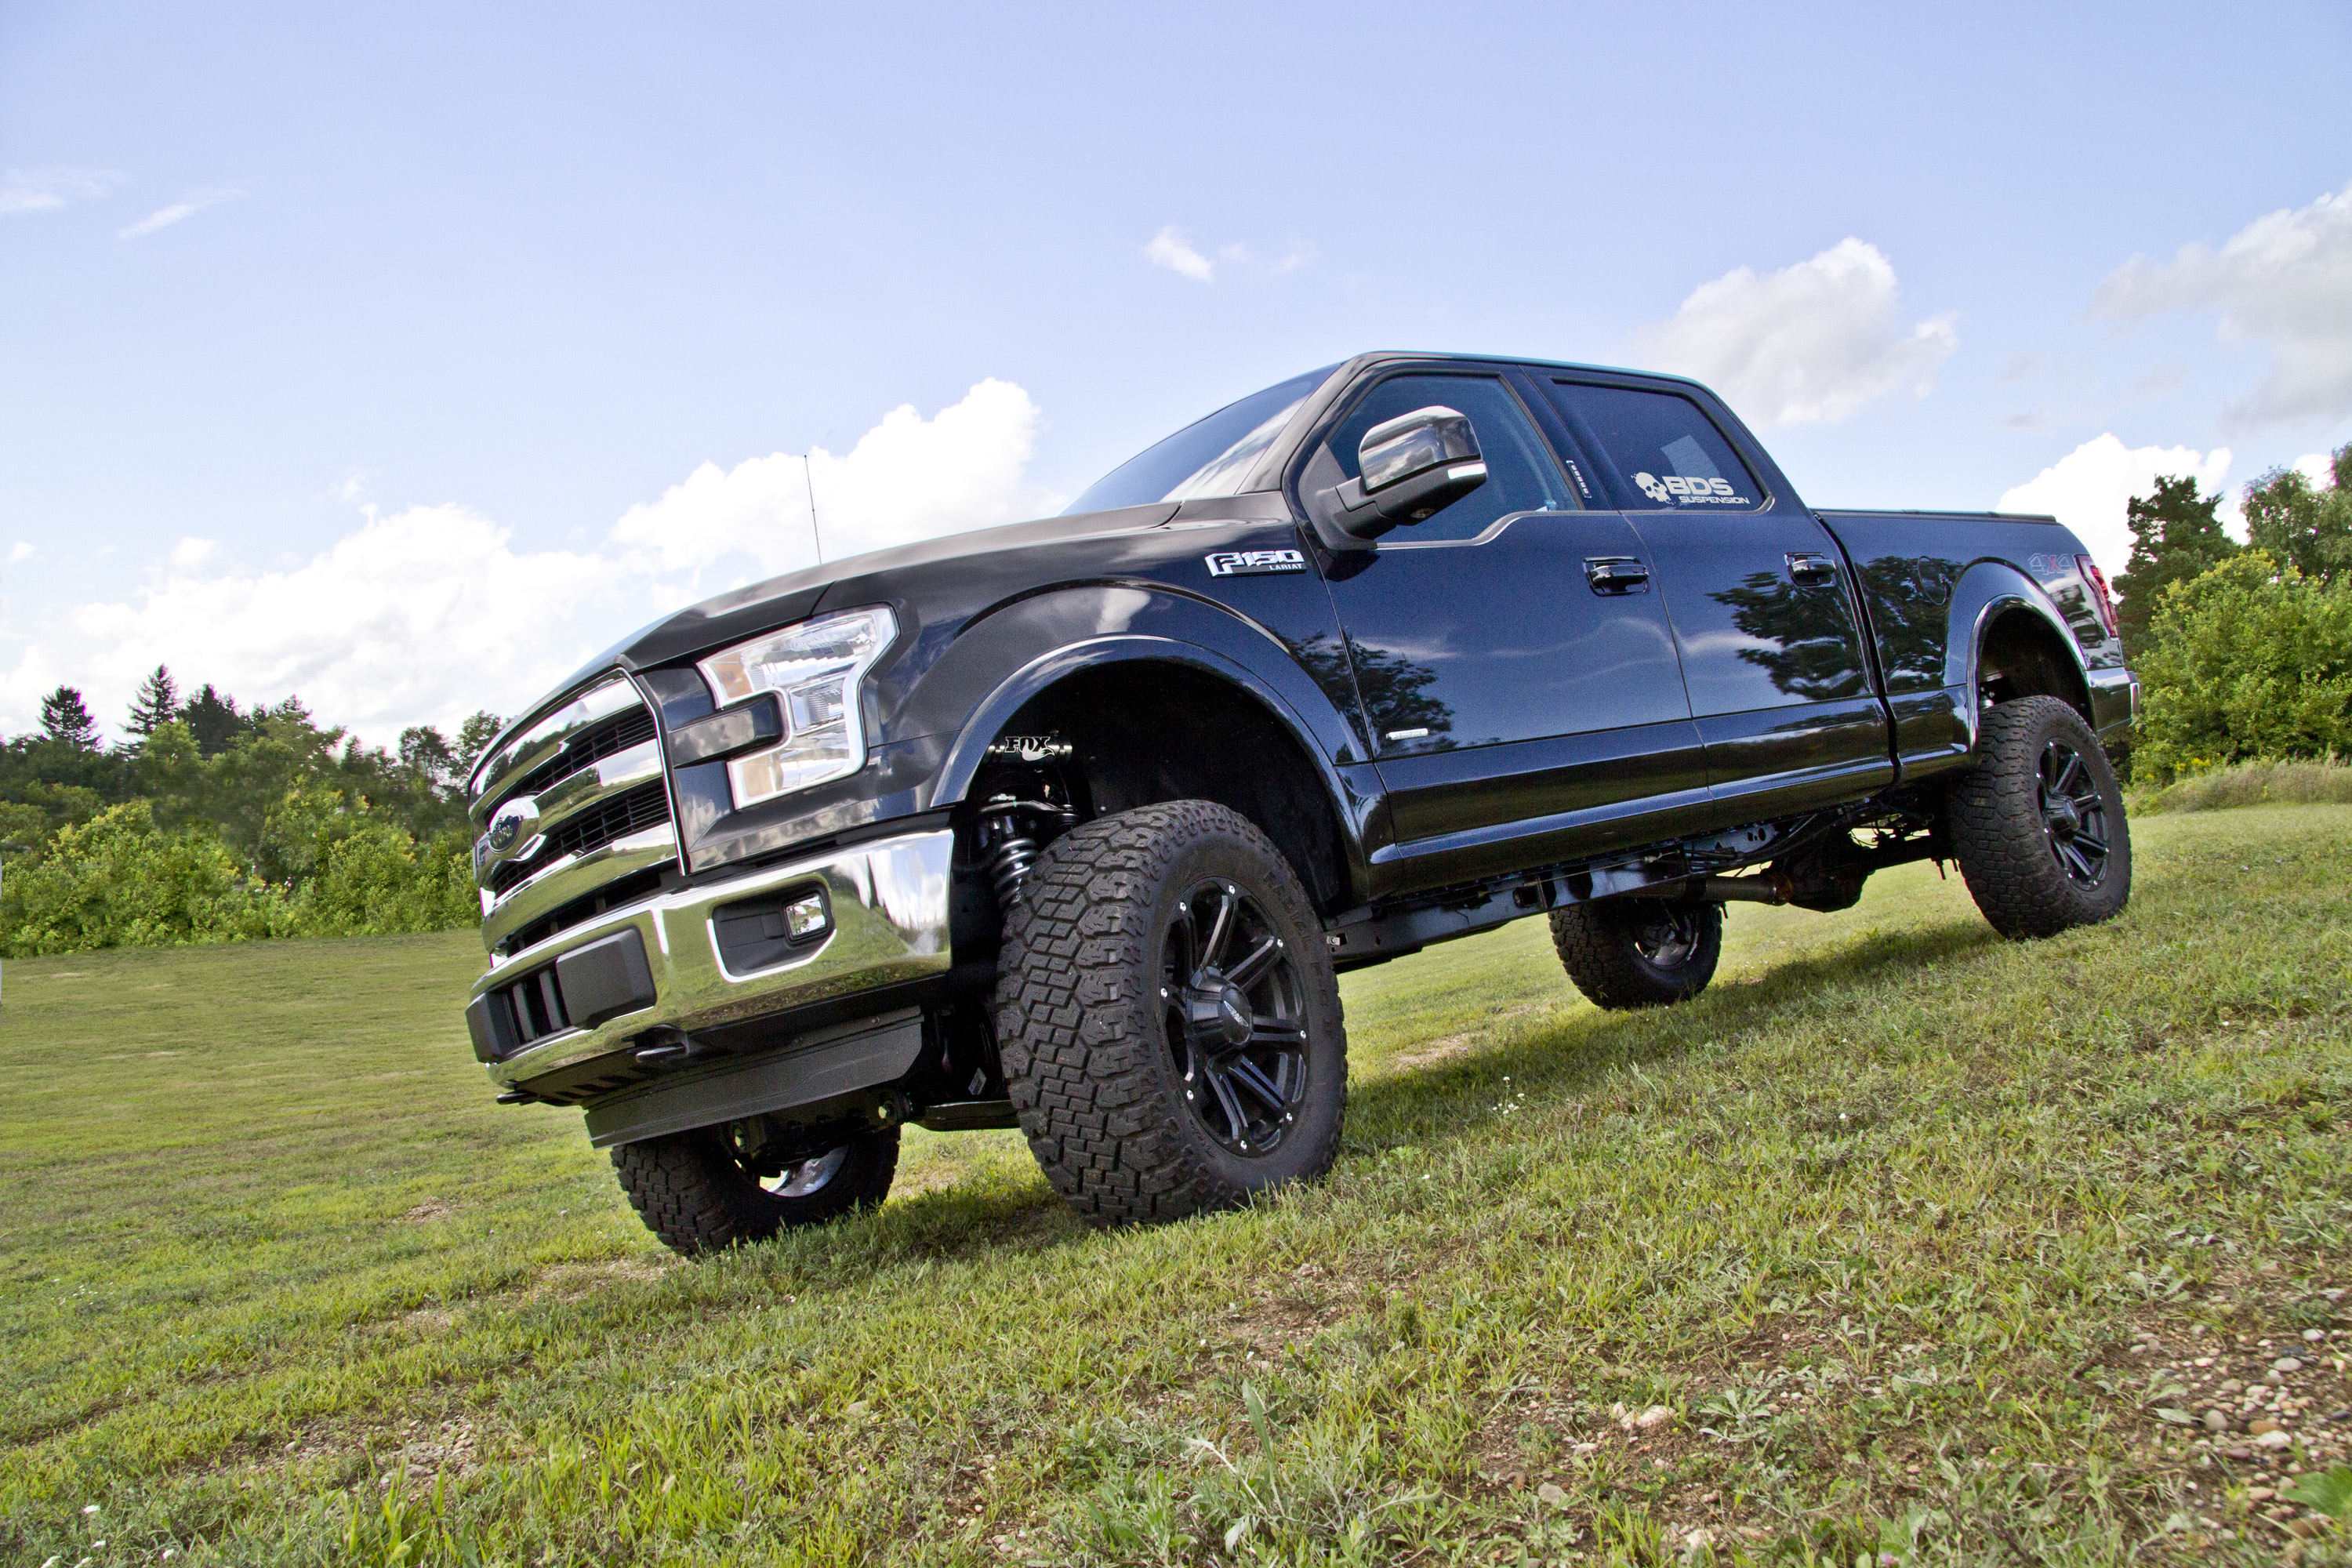 BDS' full Line of 2015 Ford F150 Lift Kits Now Shipping!